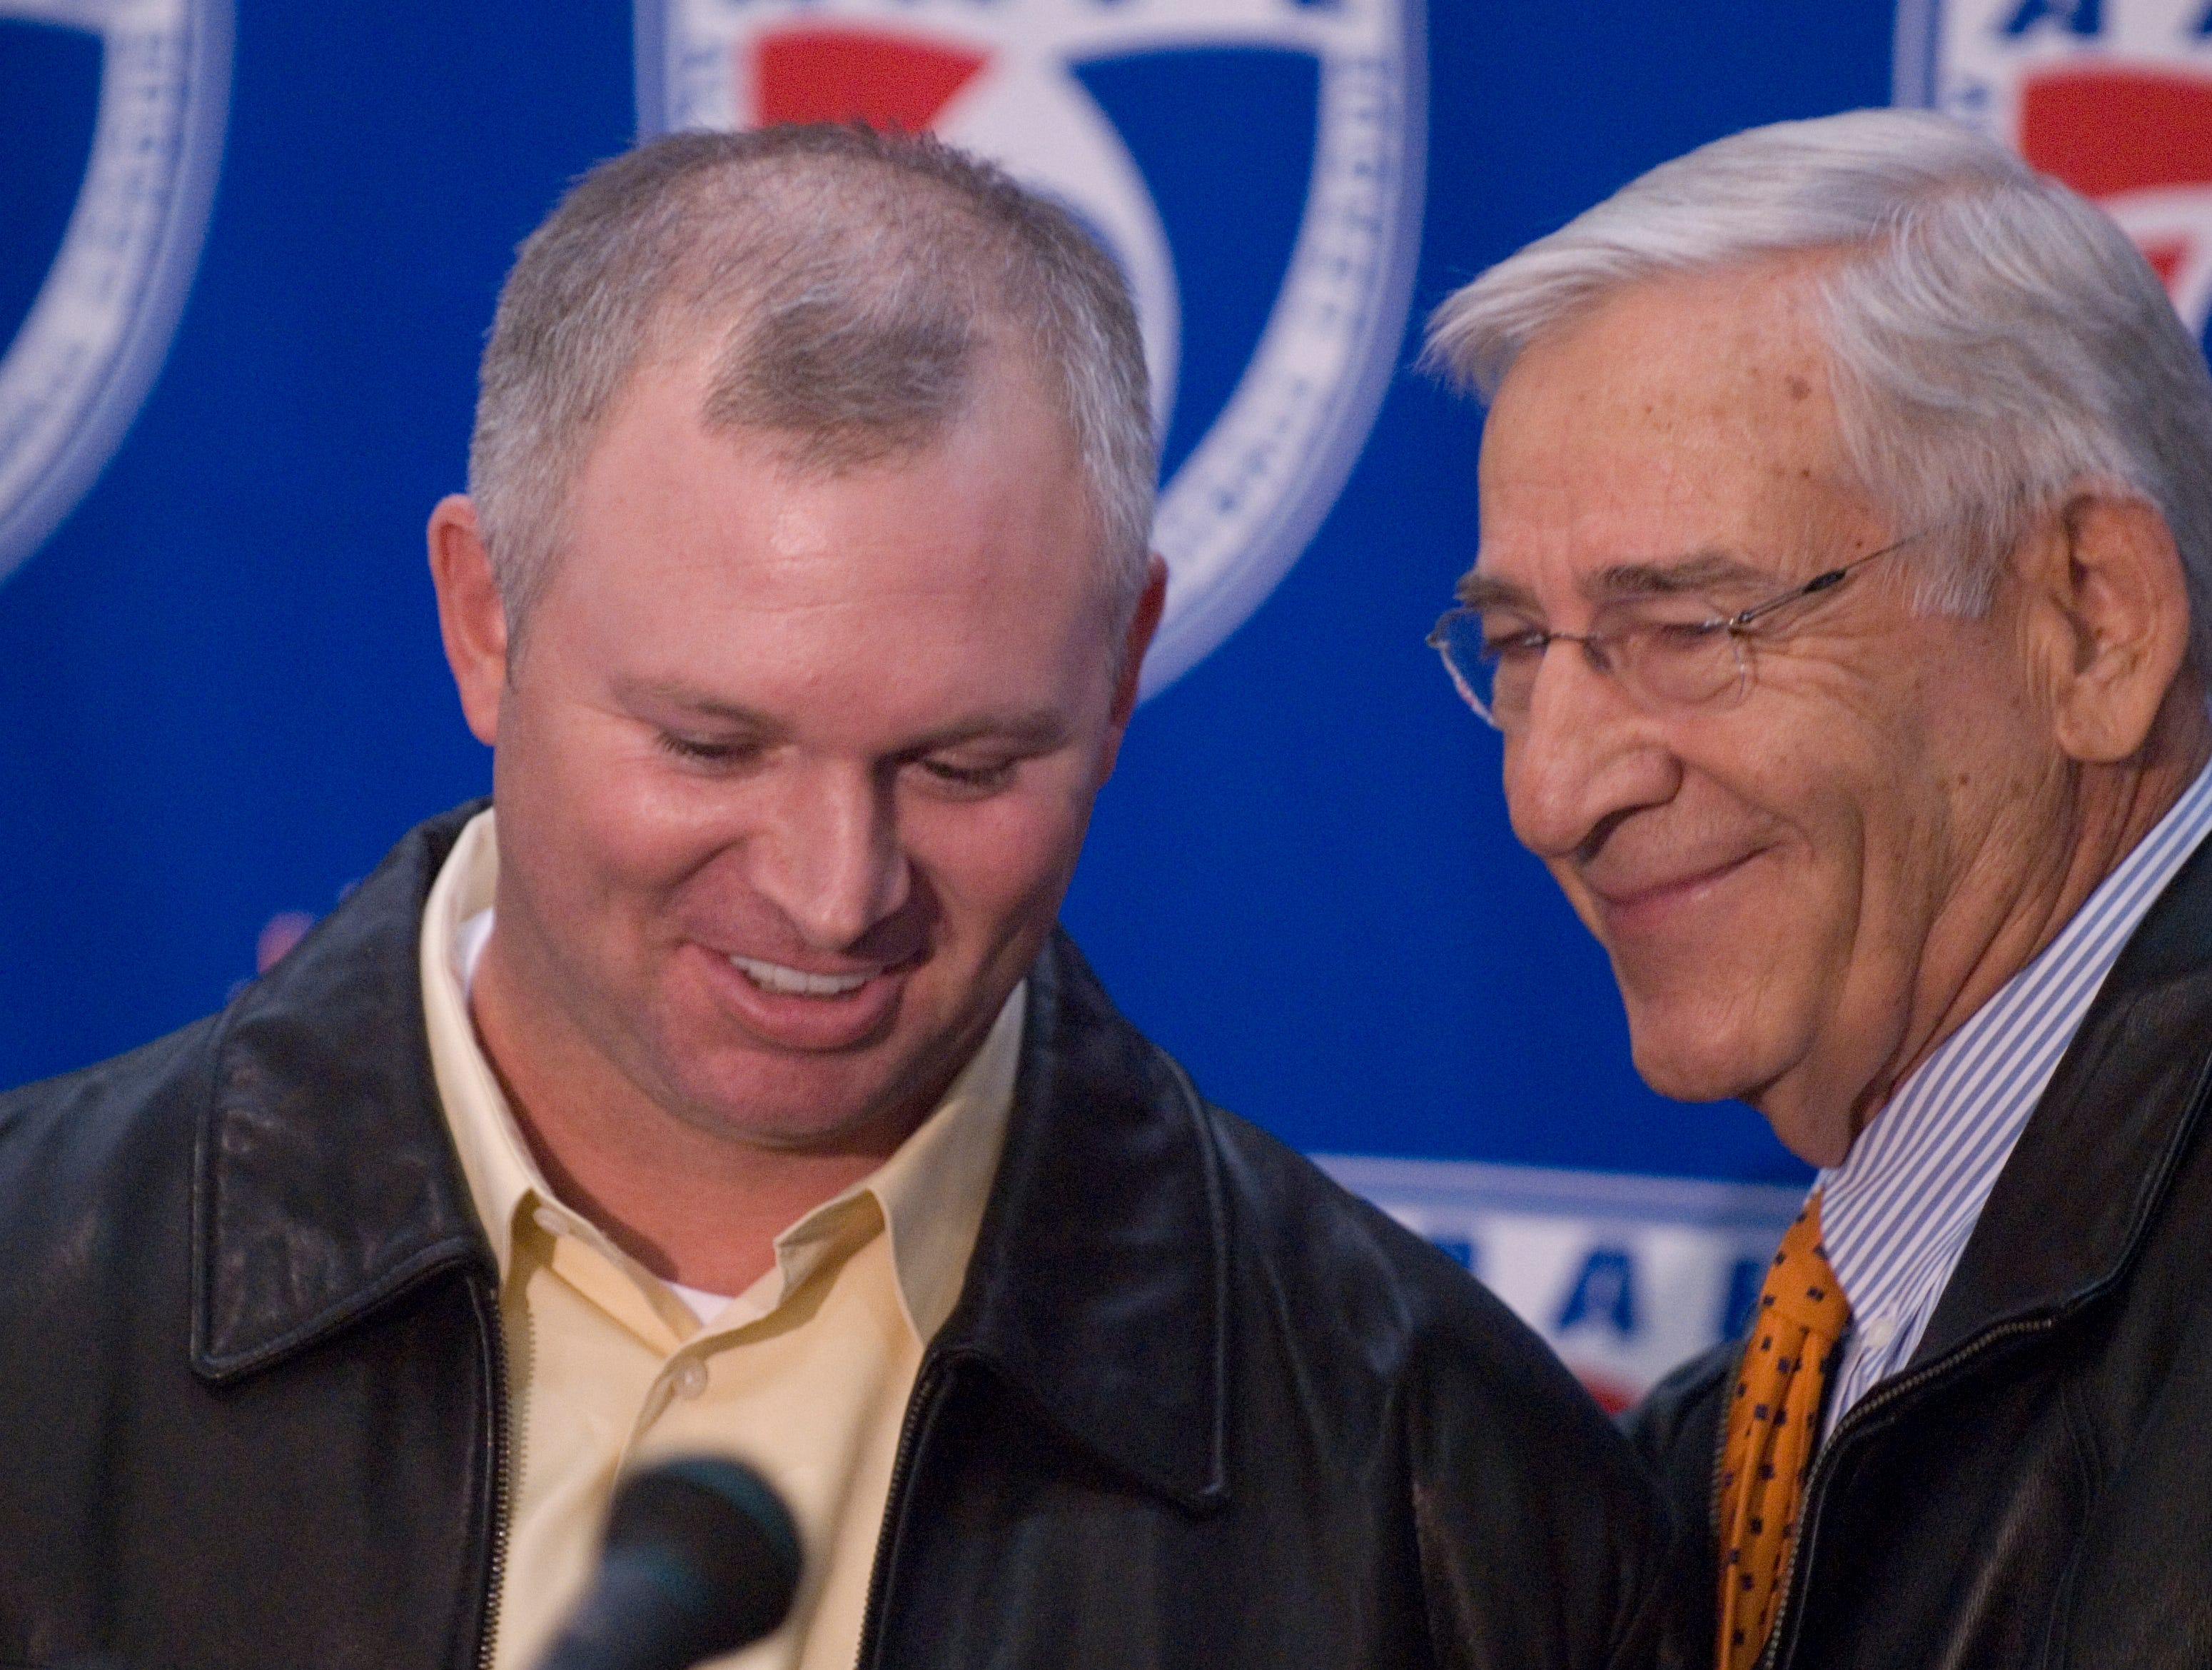 Retired University of Tennessee athletics director Doug Dickey, right, introduces Andy Kelly, center, as the coach of Team Tennessee of the All American Football League following the super combine at Neyland Thompson Center.  Kelly played for UT from 1888-91 and Dickey is an executive for the new league. 12/06/07